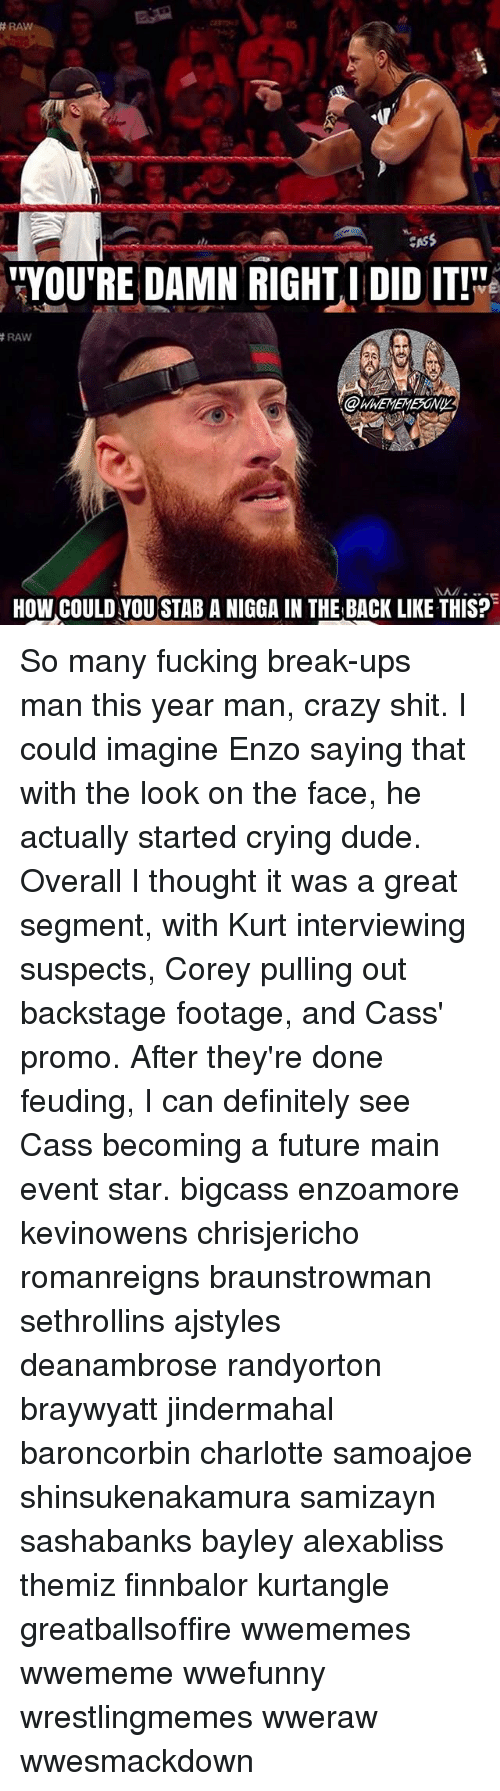 """Main Event: RAW  CASS  """"YOU'RE DAMN RIGHT I DID IT!  RAW  HOW COULD YOU STAB A NIGGA IN THE BACK LIKE THIS? So many fucking break-ups man this year man, crazy shit. I could imagine Enzo saying that with the look on the face, he actually started crying dude. Overall I thought it was a great segment, with Kurt interviewing suspects, Corey pulling out backstage footage, and Cass' promo. After they're done feuding, I can definitely see Cass becoming a future main event star. bigcass enzoamore kevinowens chrisjericho romanreigns braunstrowman sethrollins ajstyles deanambrose randyorton braywyatt jindermahal baroncorbin charlotte samoajoe shinsukenakamura samizayn sashabanks bayley alexabliss themiz finnbalor kurtangle greatballsoffire wwememes wwememe wwefunny wrestlingmemes wweraw wwesmackdown"""